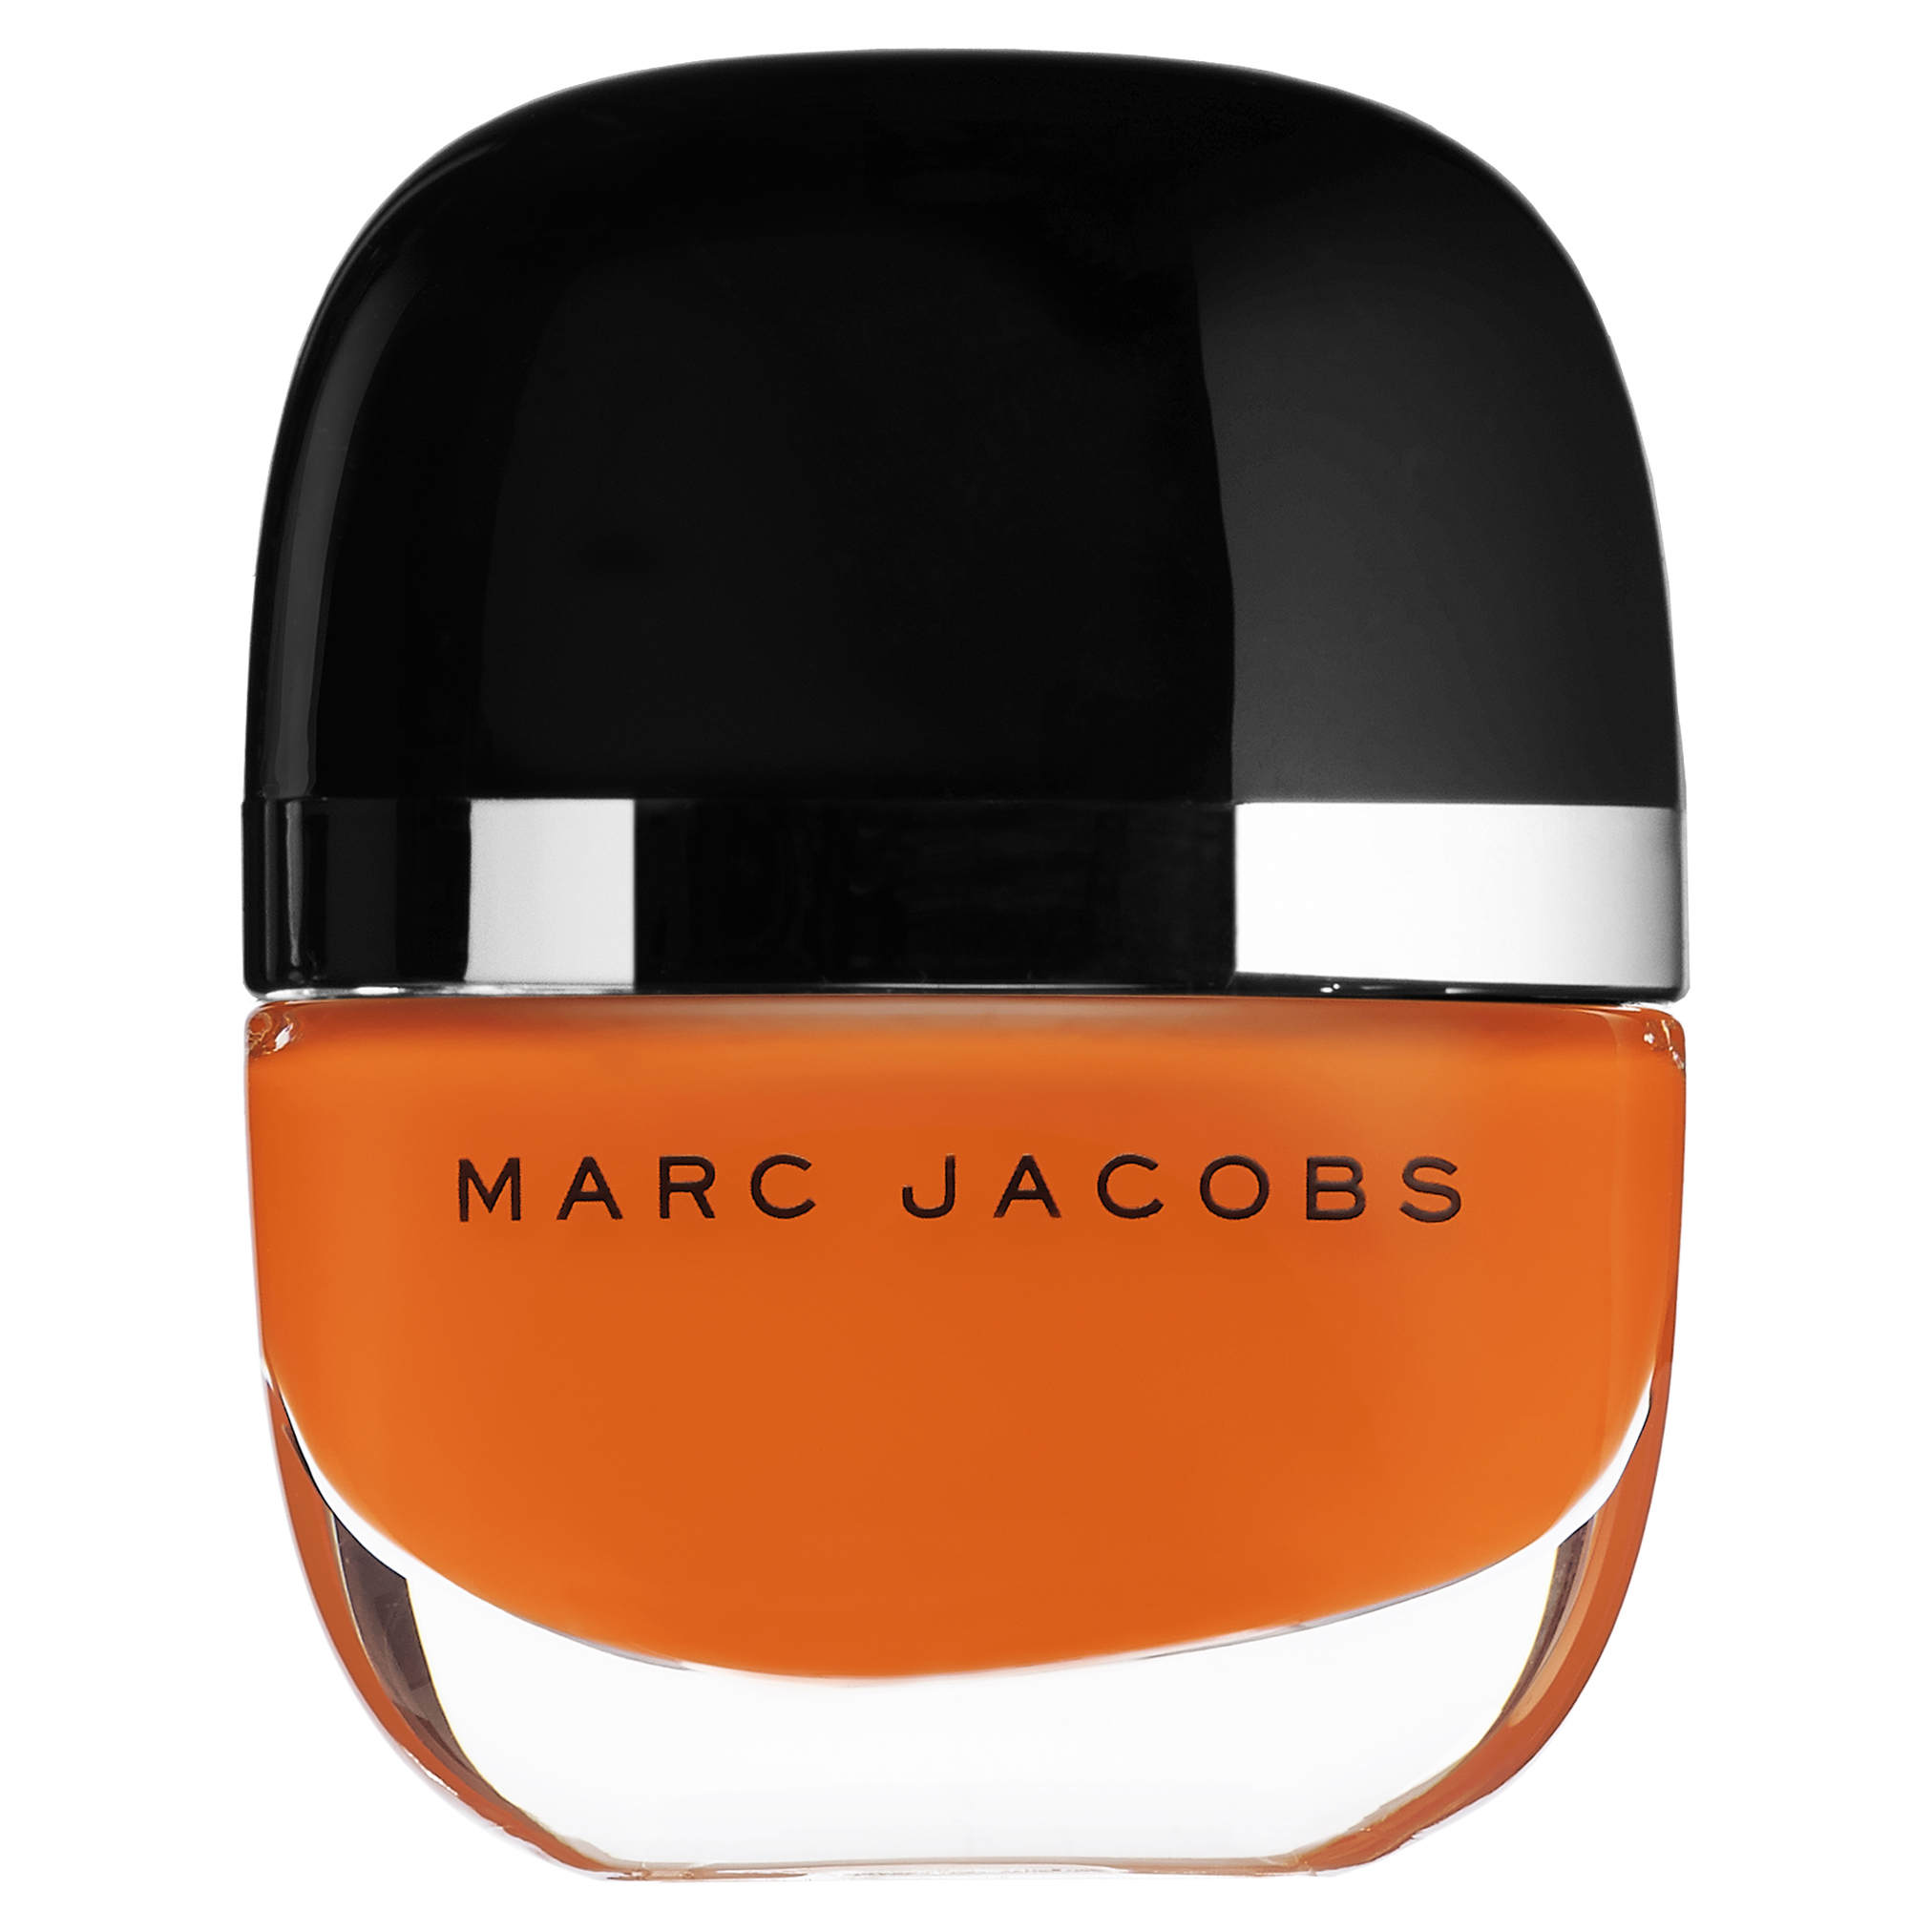 El Enamored de Marc Jacobs, por 12¤.